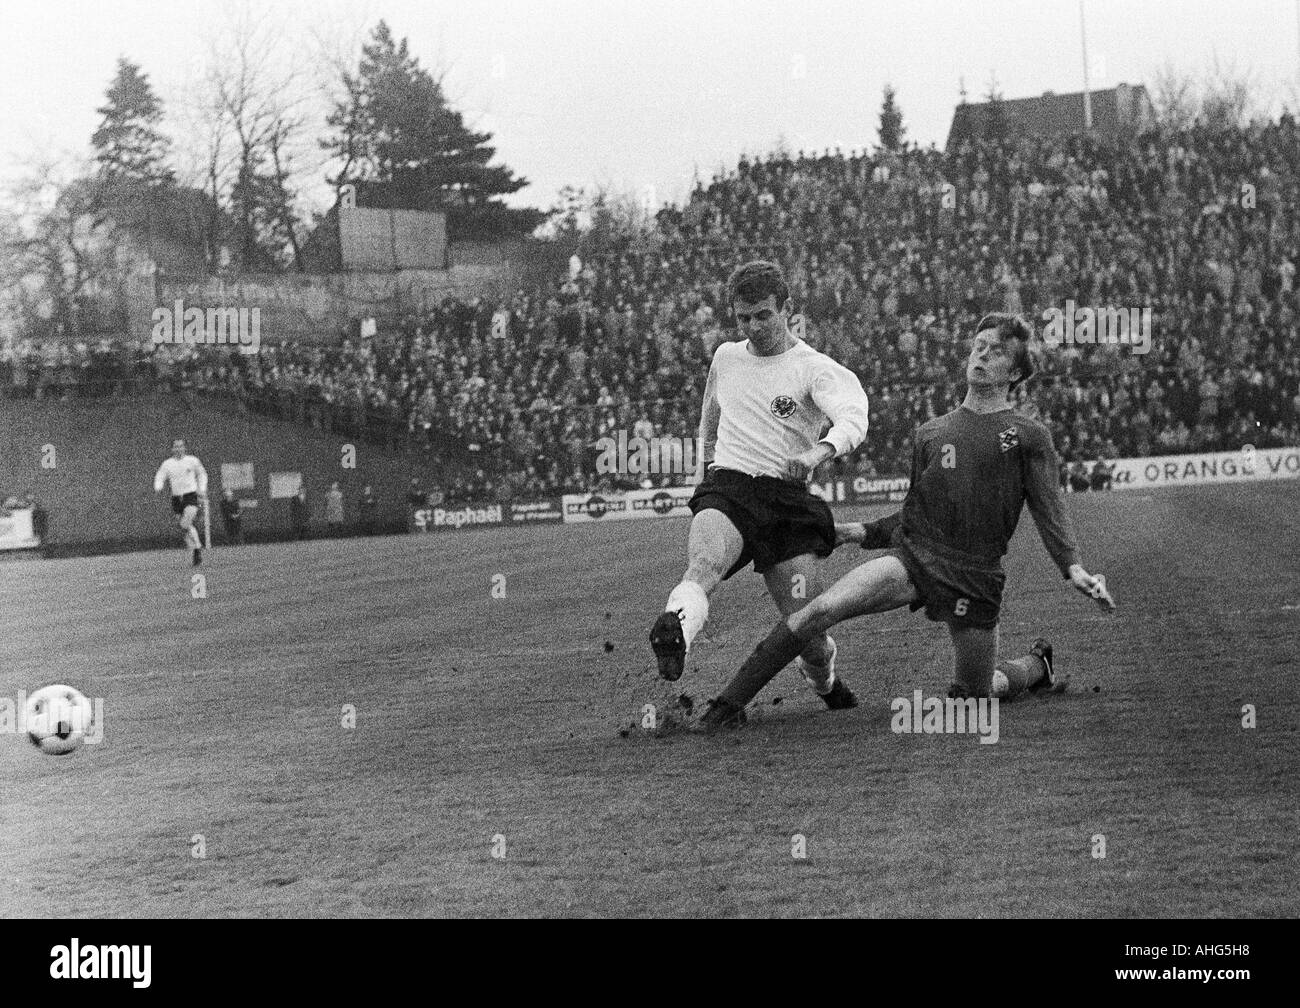 football, Bundesliga, 1968/1969, Borussia Moenchengladbach versus Eintracht Frankfurt 2:3, Boekelberg Stadium, scene of the match, duel between Bernd Hoelzenbein (Frankfurt) left and Winfried Schaefer (MG) - Stock Image